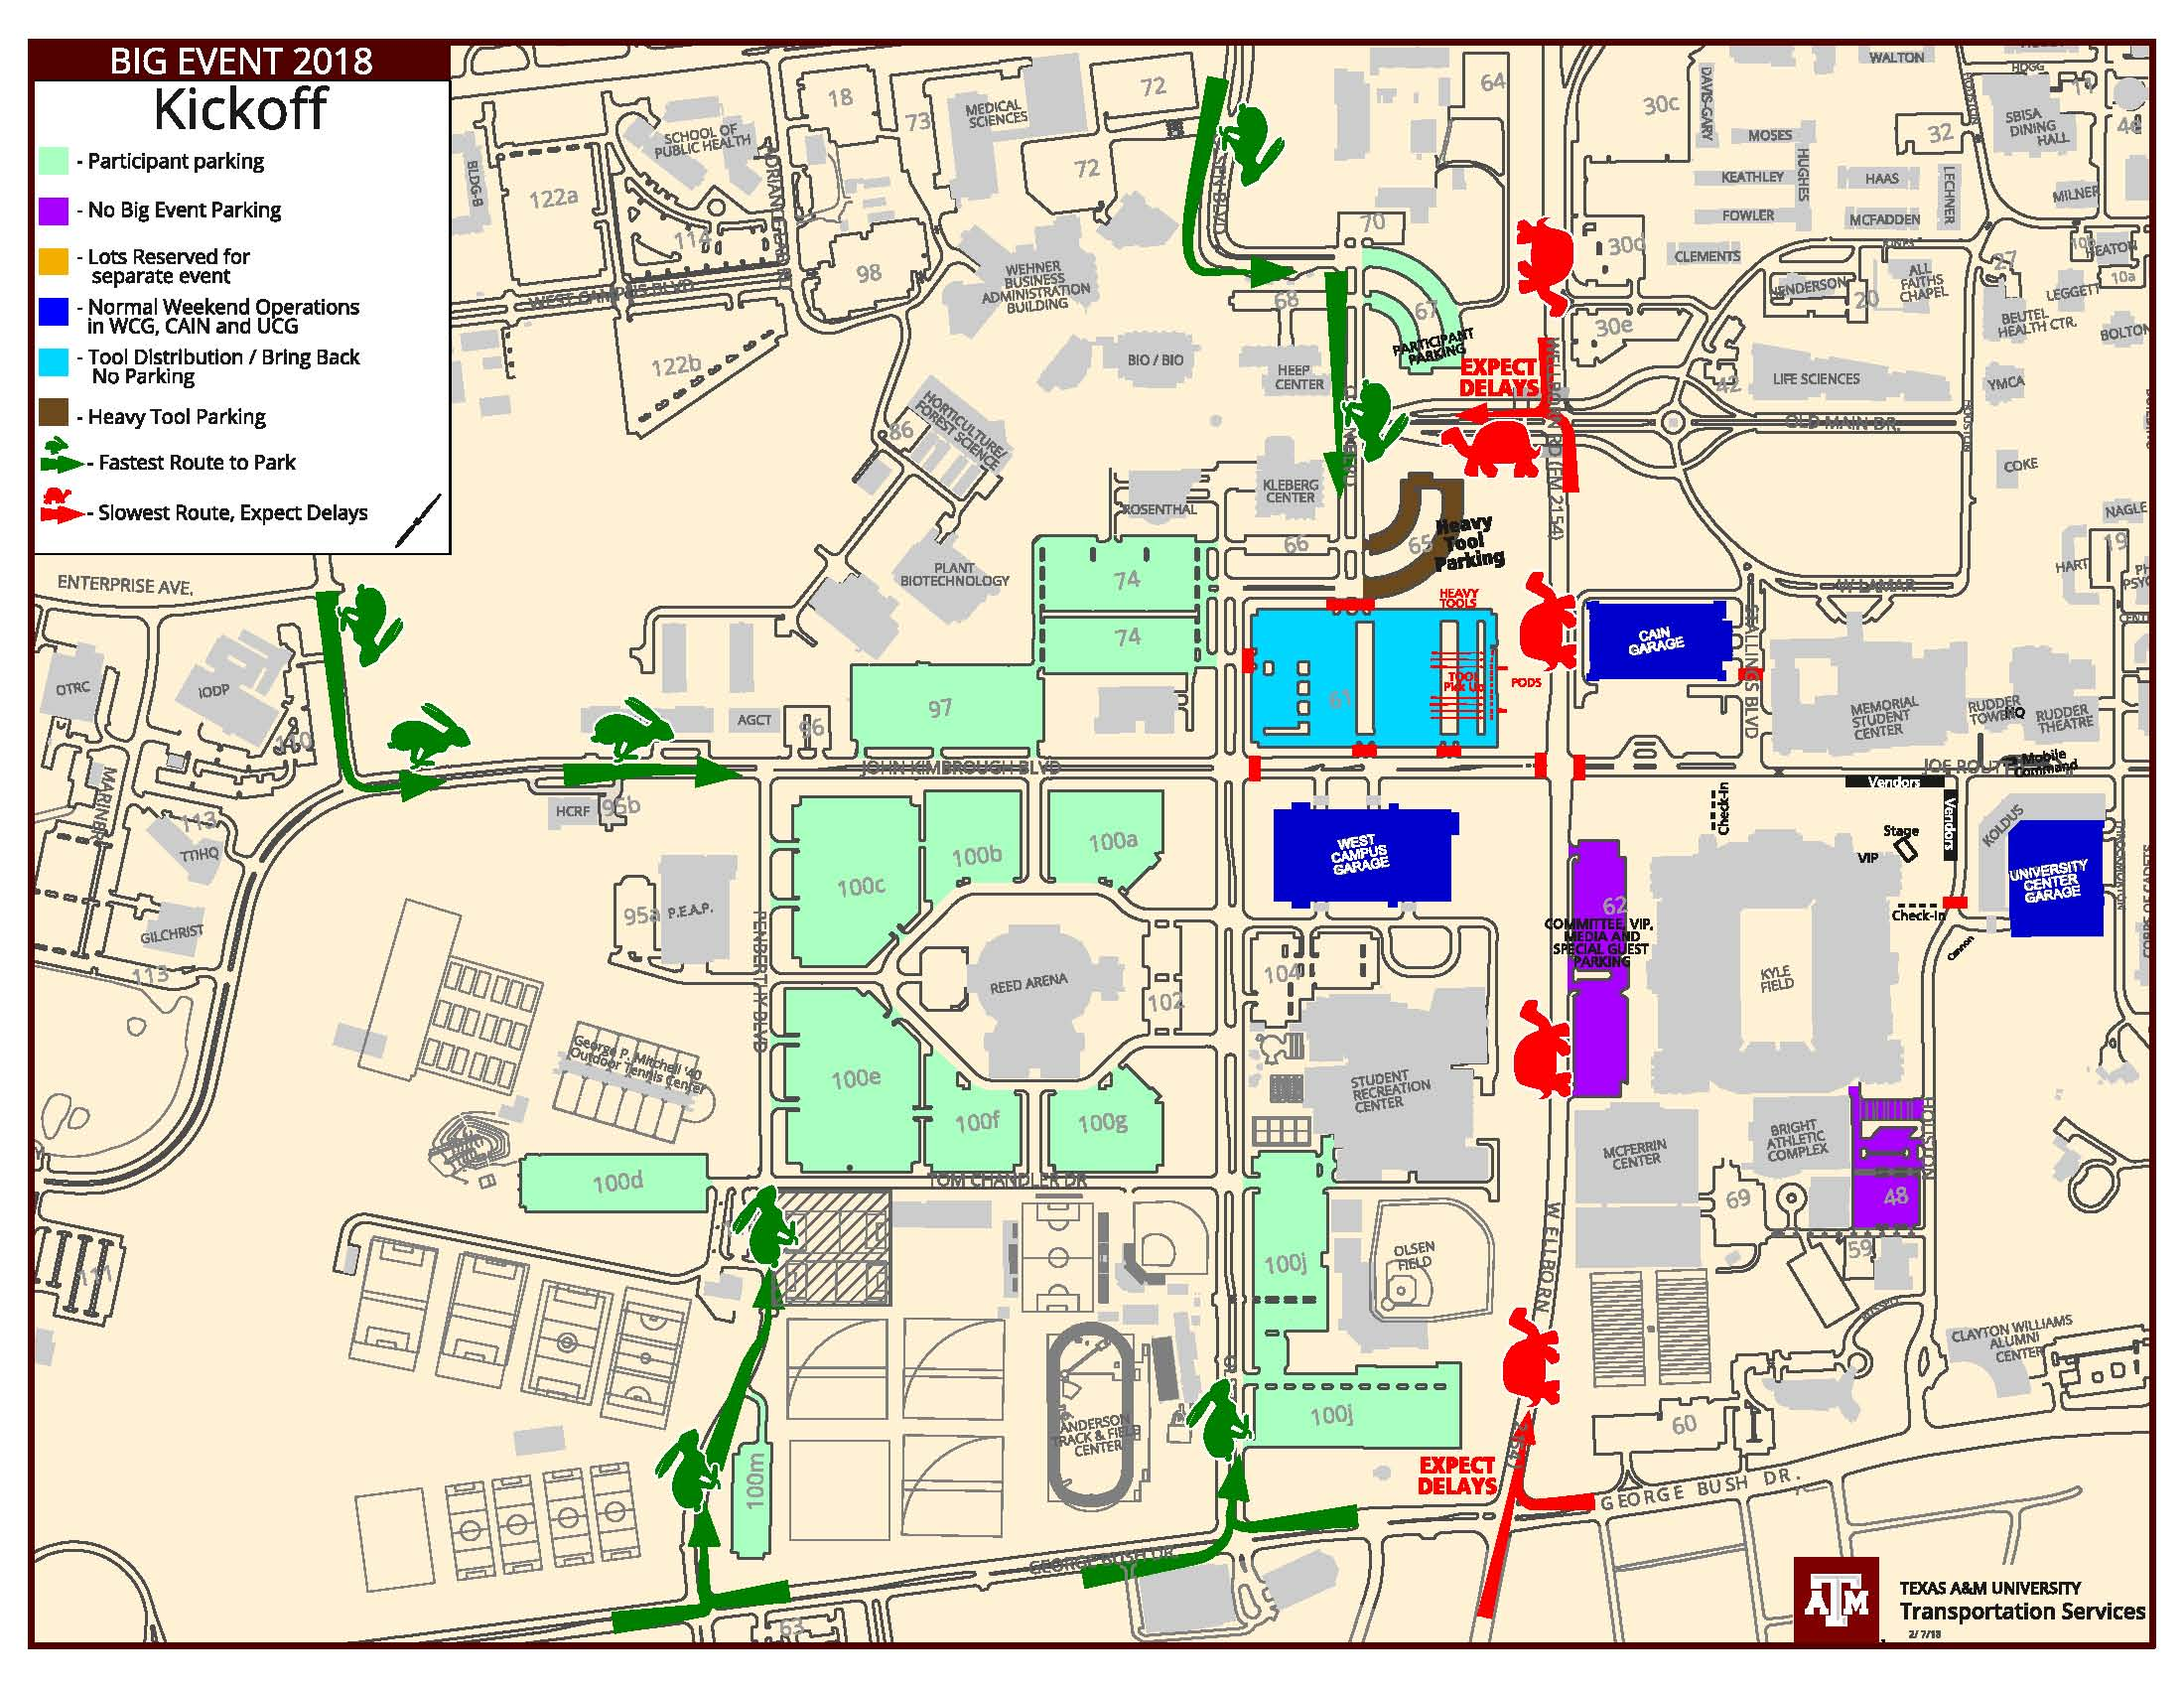 Texas Am Campus Map.The Big Event The Big Event At Texas A M